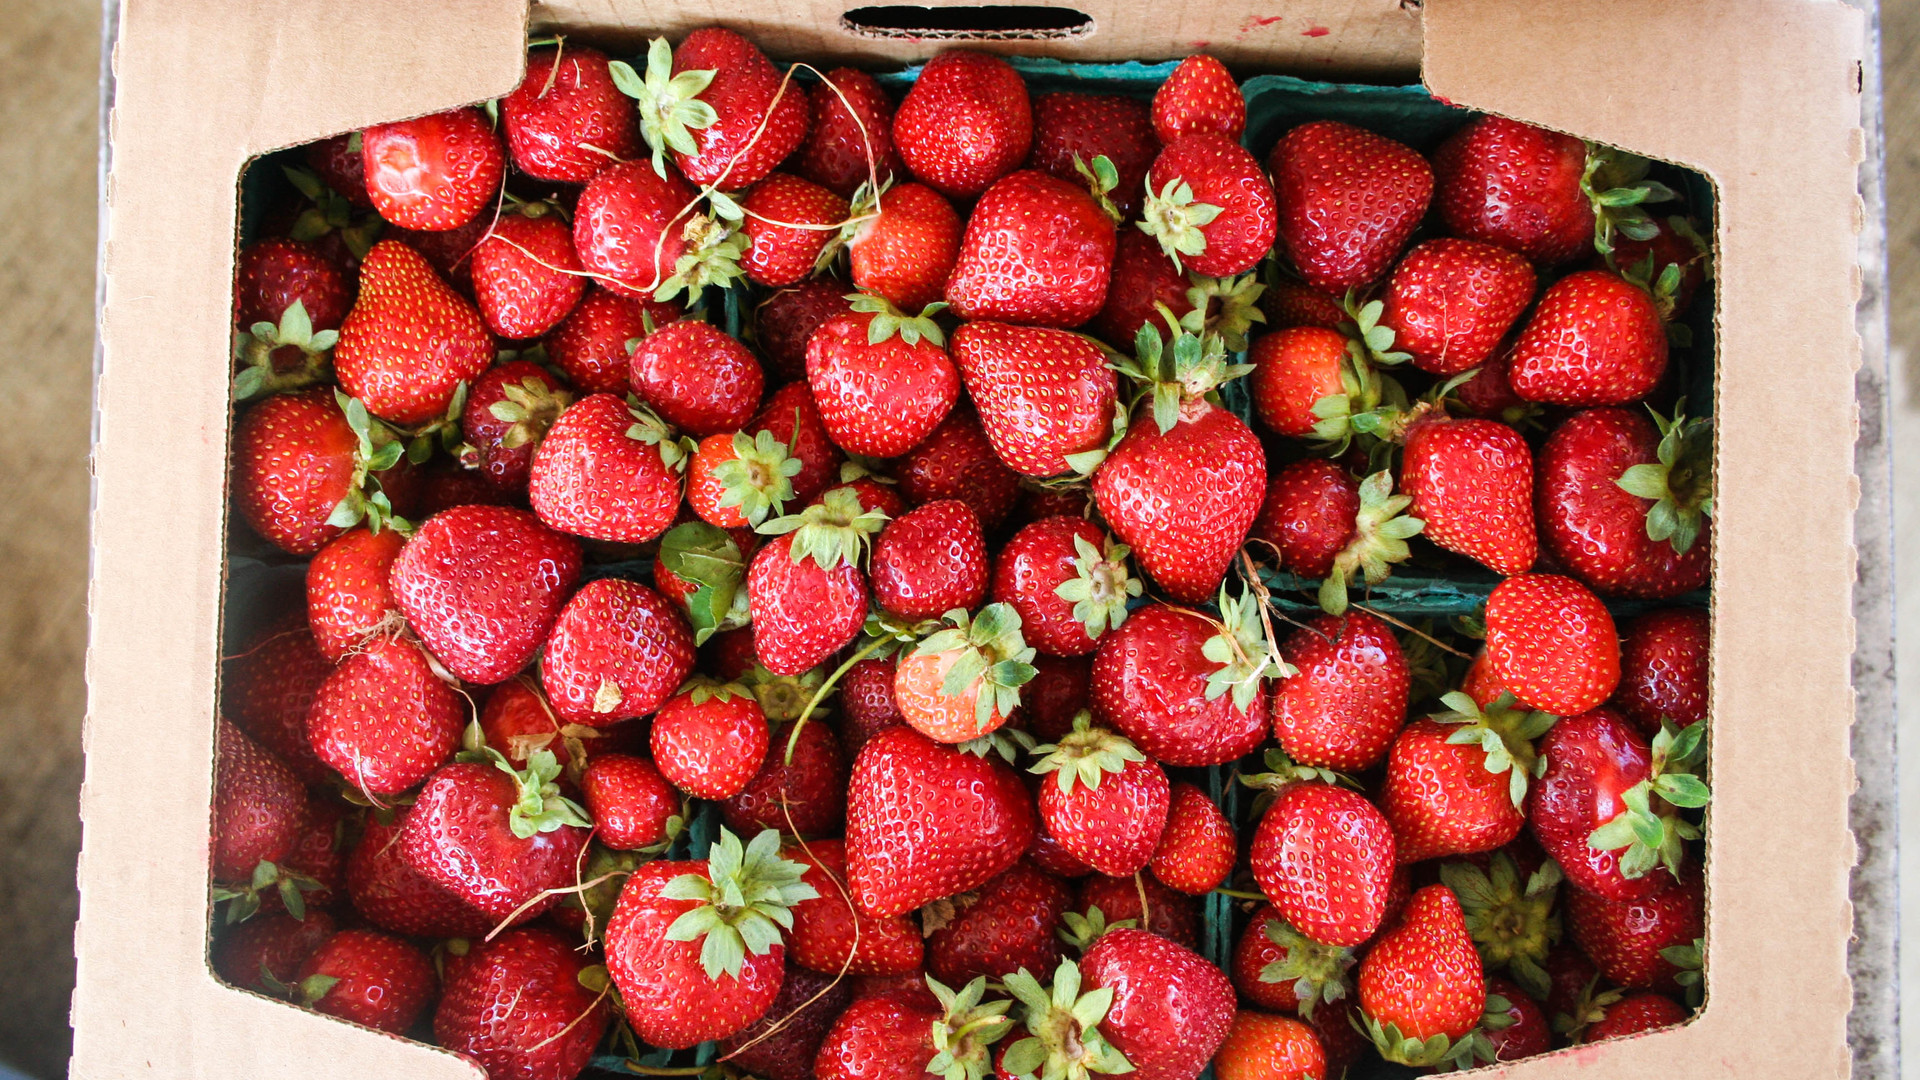 Our everbearing strawberry variety allows us to have products on the market from mid-May through late-September.